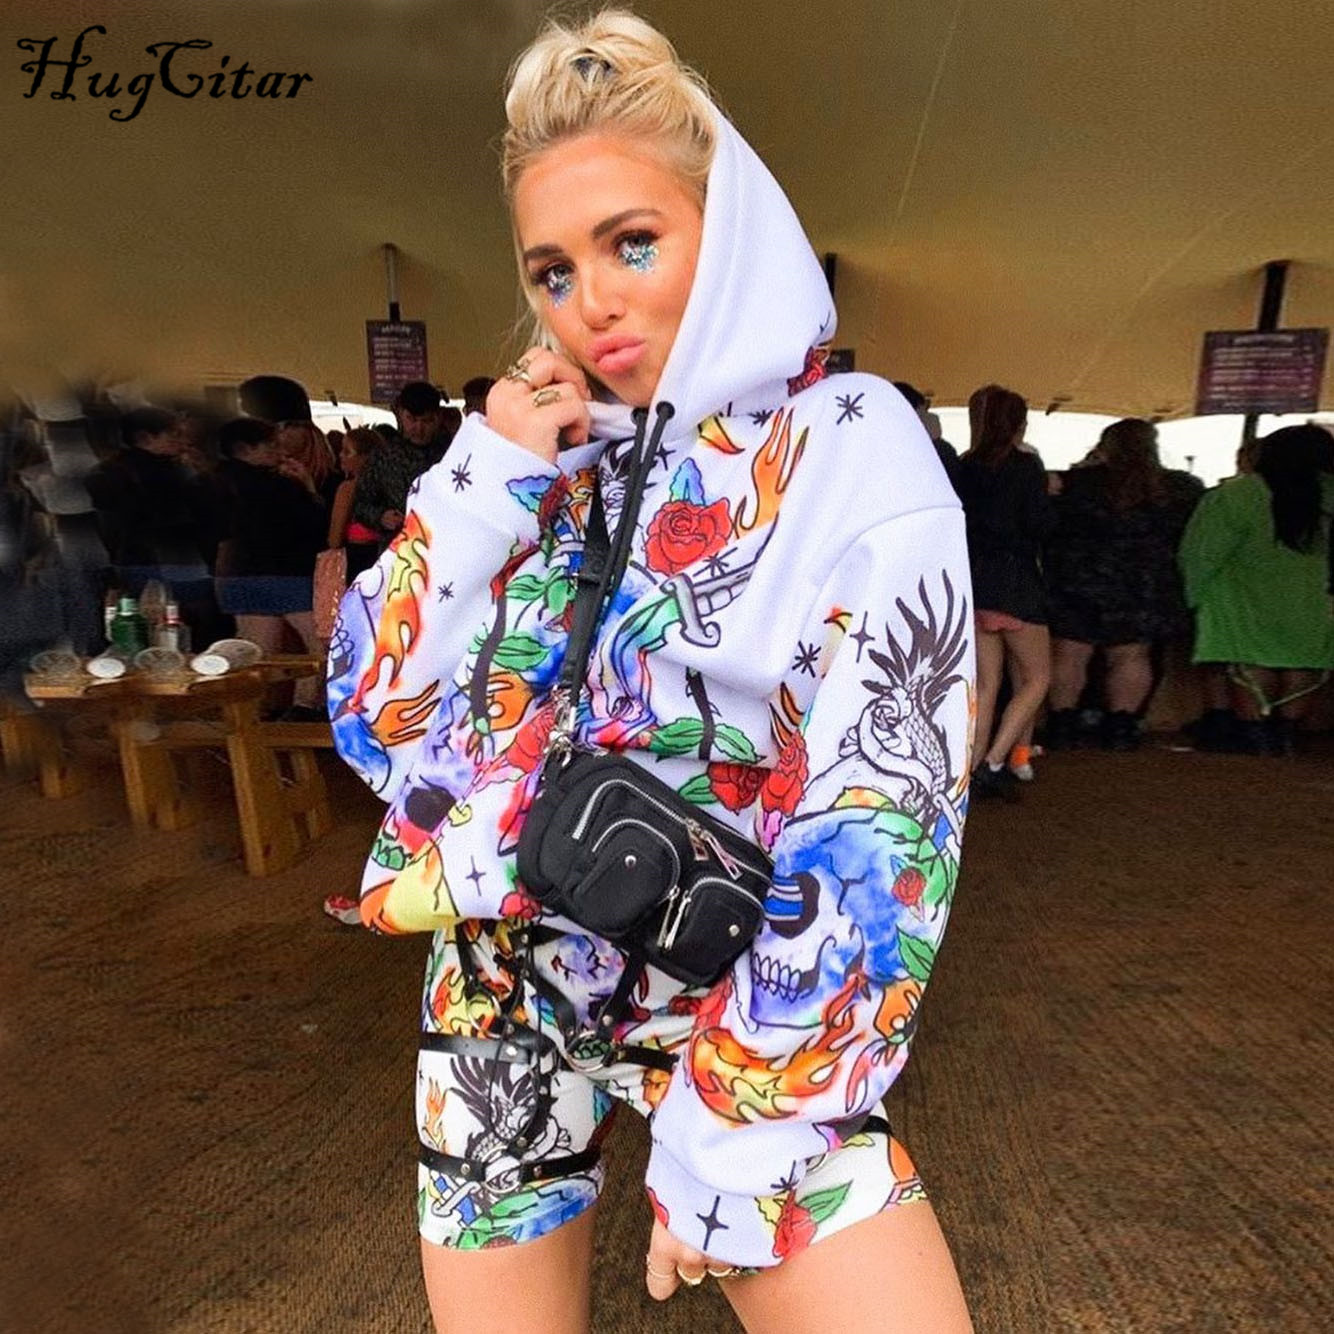 Hugcitar 2019 Print Hooded Long Sleeve Sweatshirts Autumn Winter Women Baggy Hoodies Fullover Streetwear Outfits Hoody Ladies